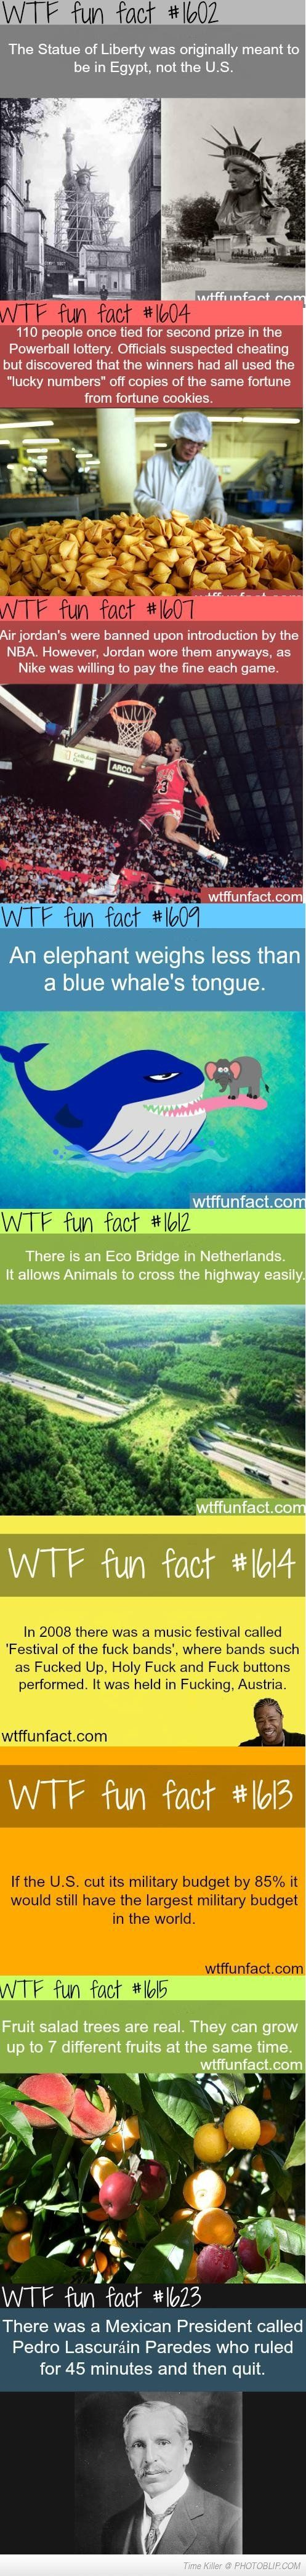 Amazing facts!!! Mind blown